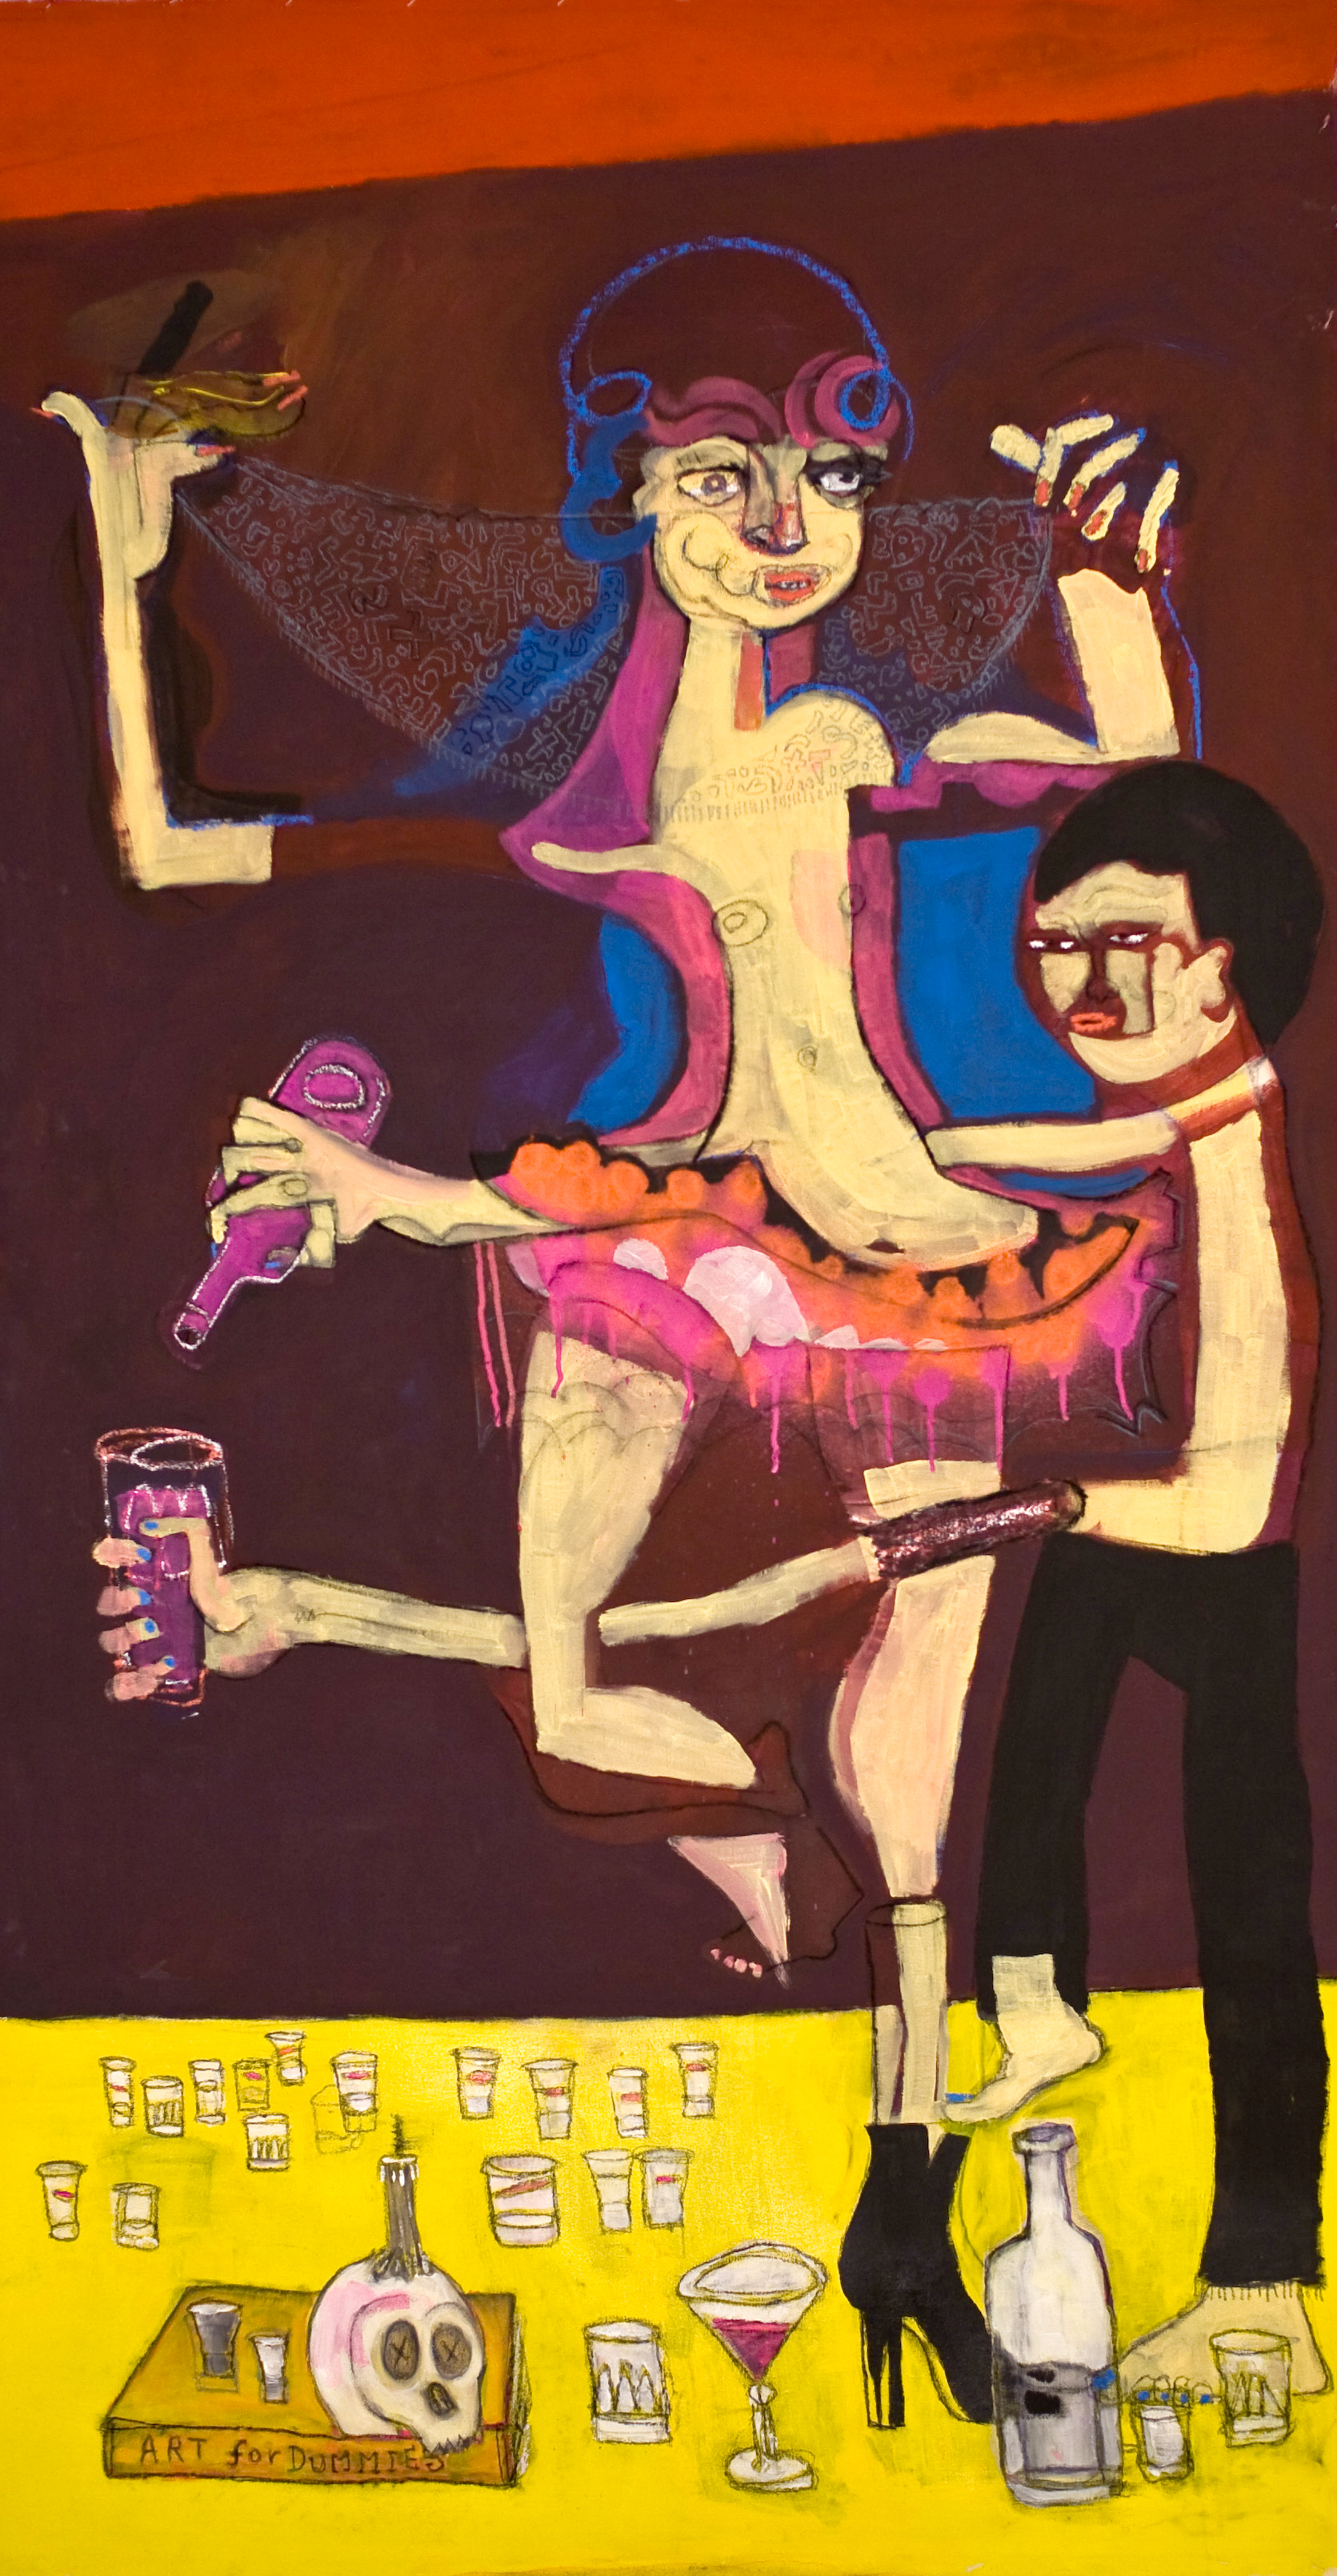 DANCING ON THE EDGE OF TRUTH-80x160Cm-31.5x63In-AC-BERLIN-2013